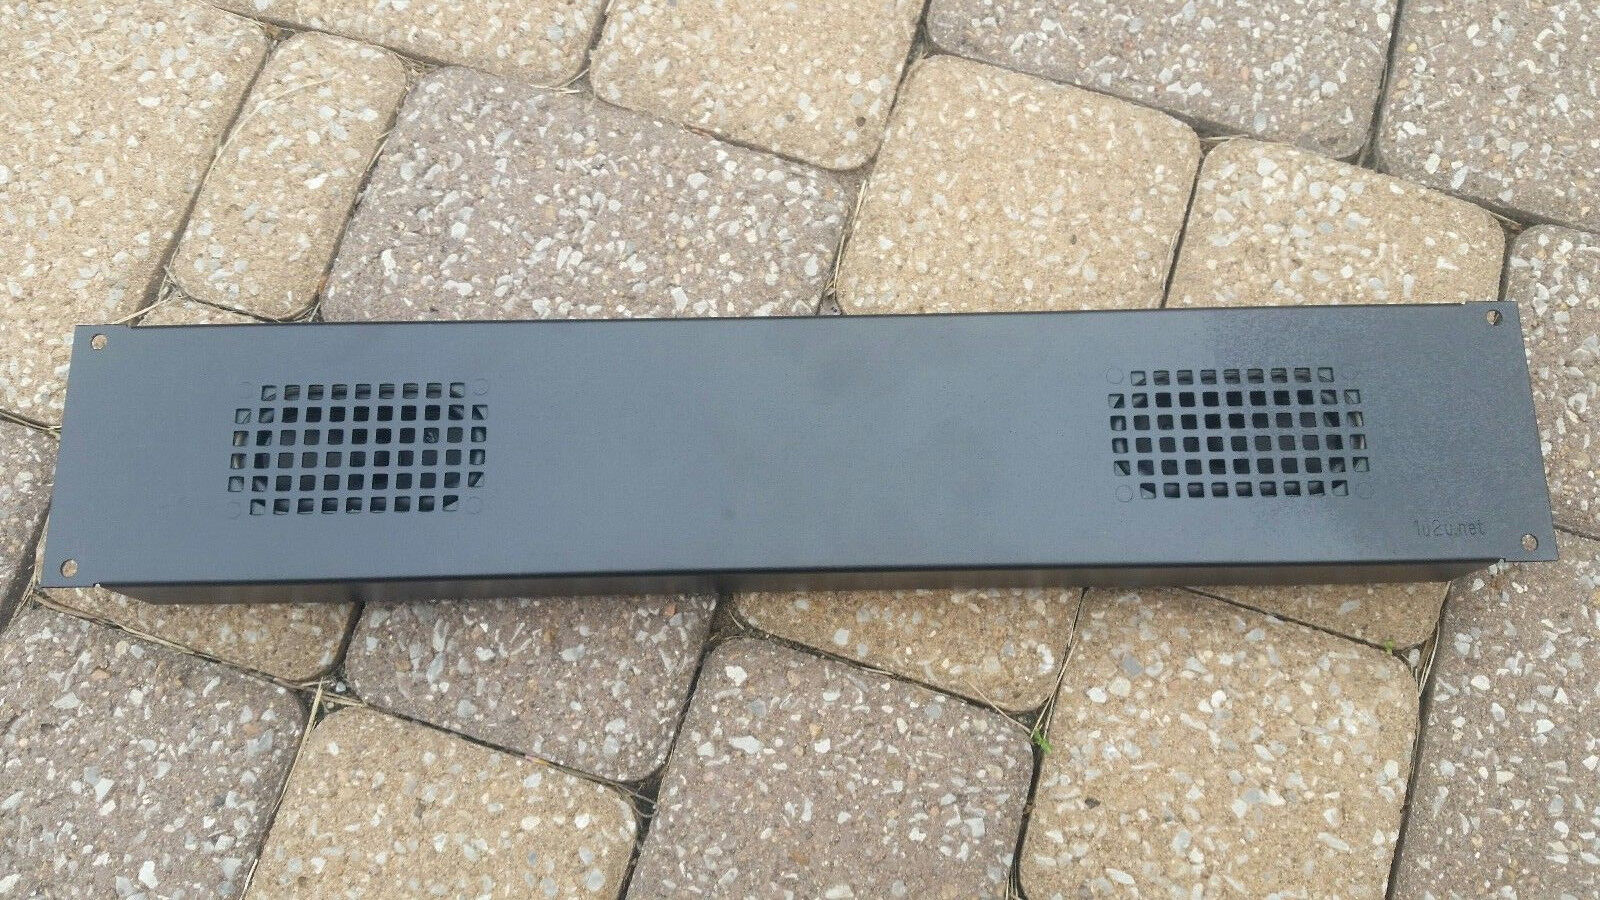 Rack-mount Speaker 2U 3 With Two 4 Ohm 5 Watt Speakers R-390A - $33.00